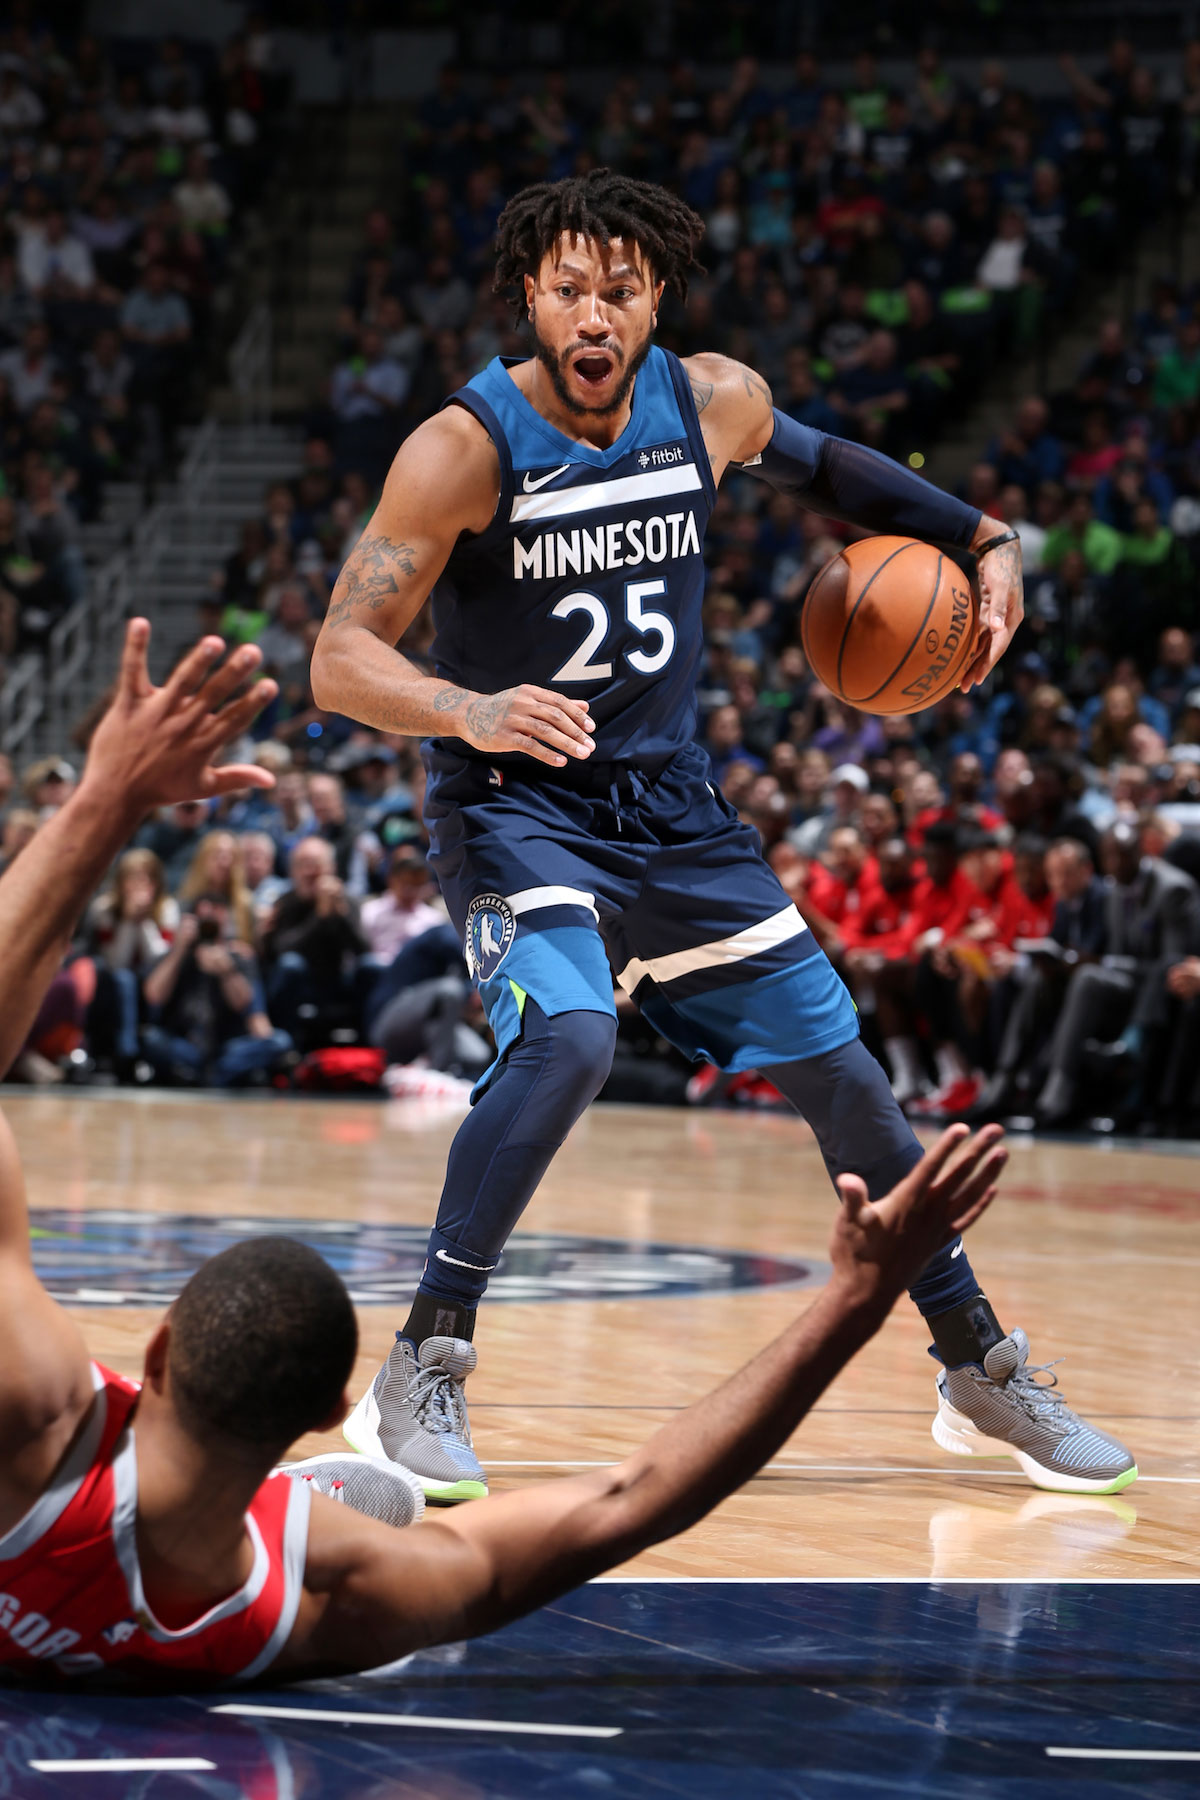 Derrick Rose #25 of the Minnesota Timberwolves handles the ball against the Houston Rockets in Game Four of Round One of the 2018 NBA Playoffs on April 23, 2018 at Target Center in Minneapolis, Minnesota.